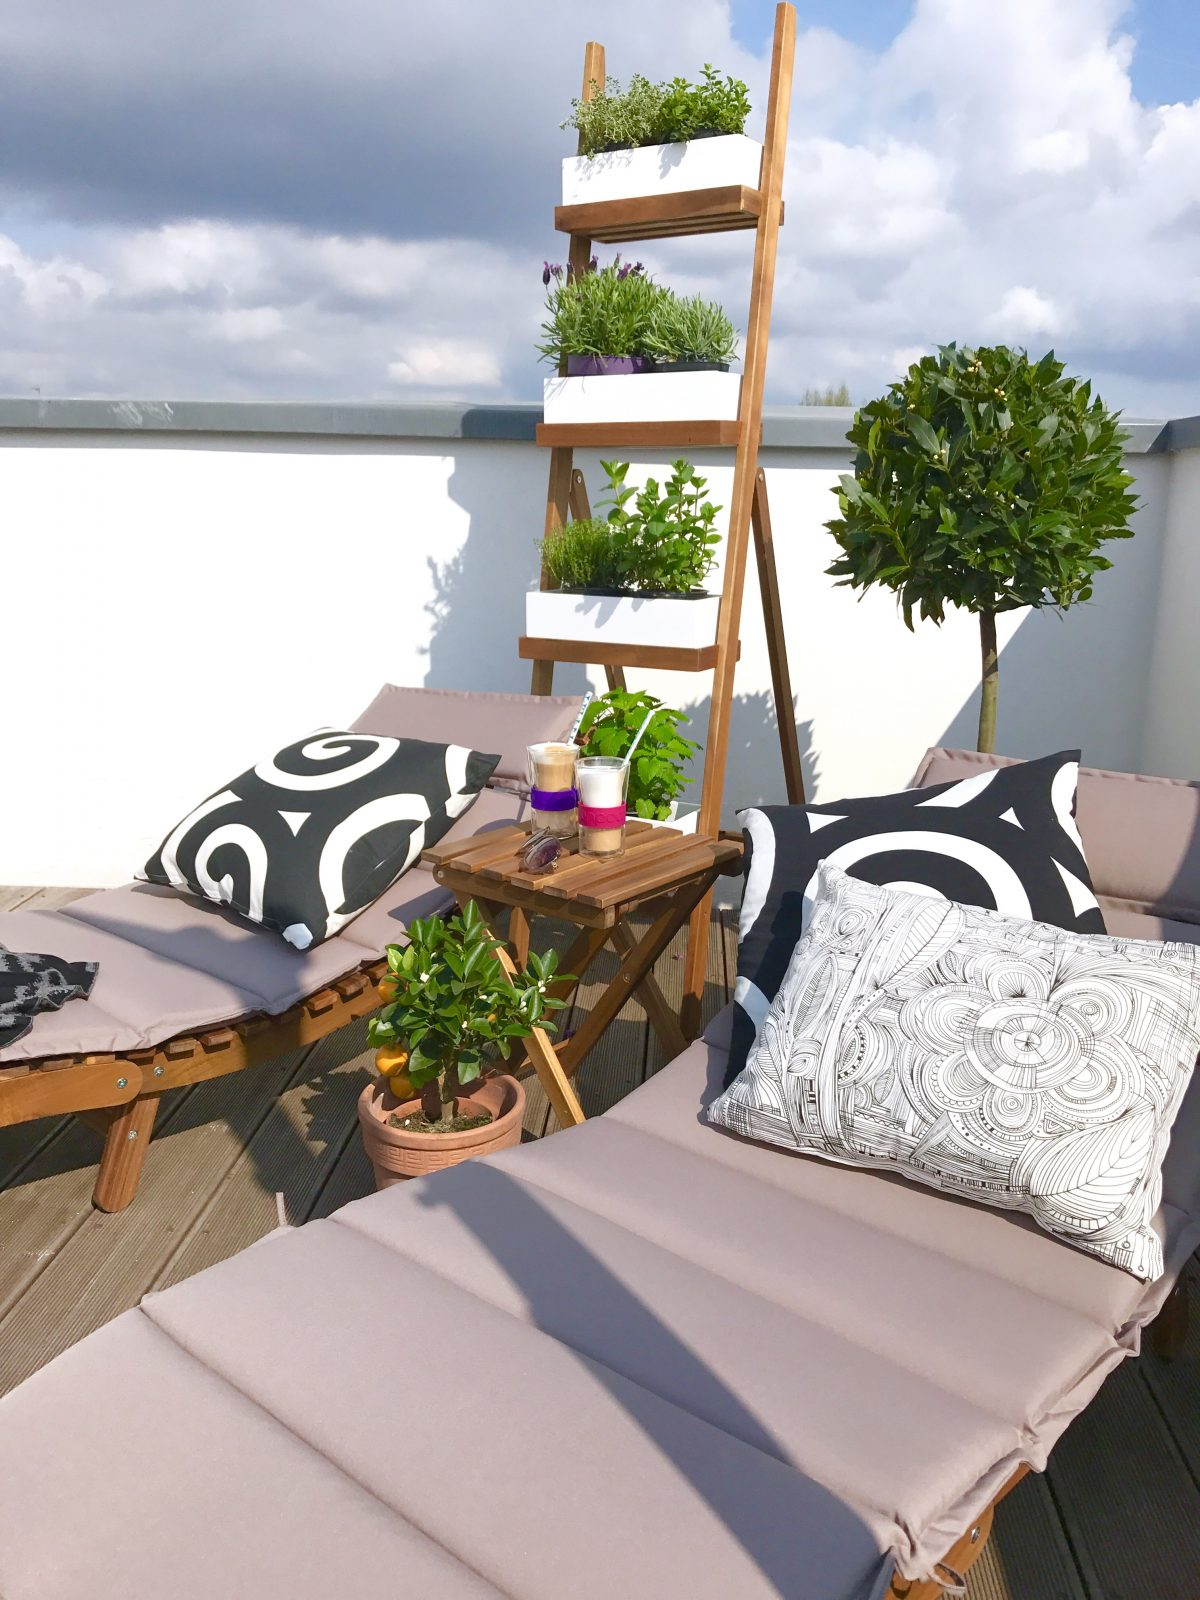 dachterrasse g ist garten des. Black Bedroom Furniture Sets. Home Design Ideas